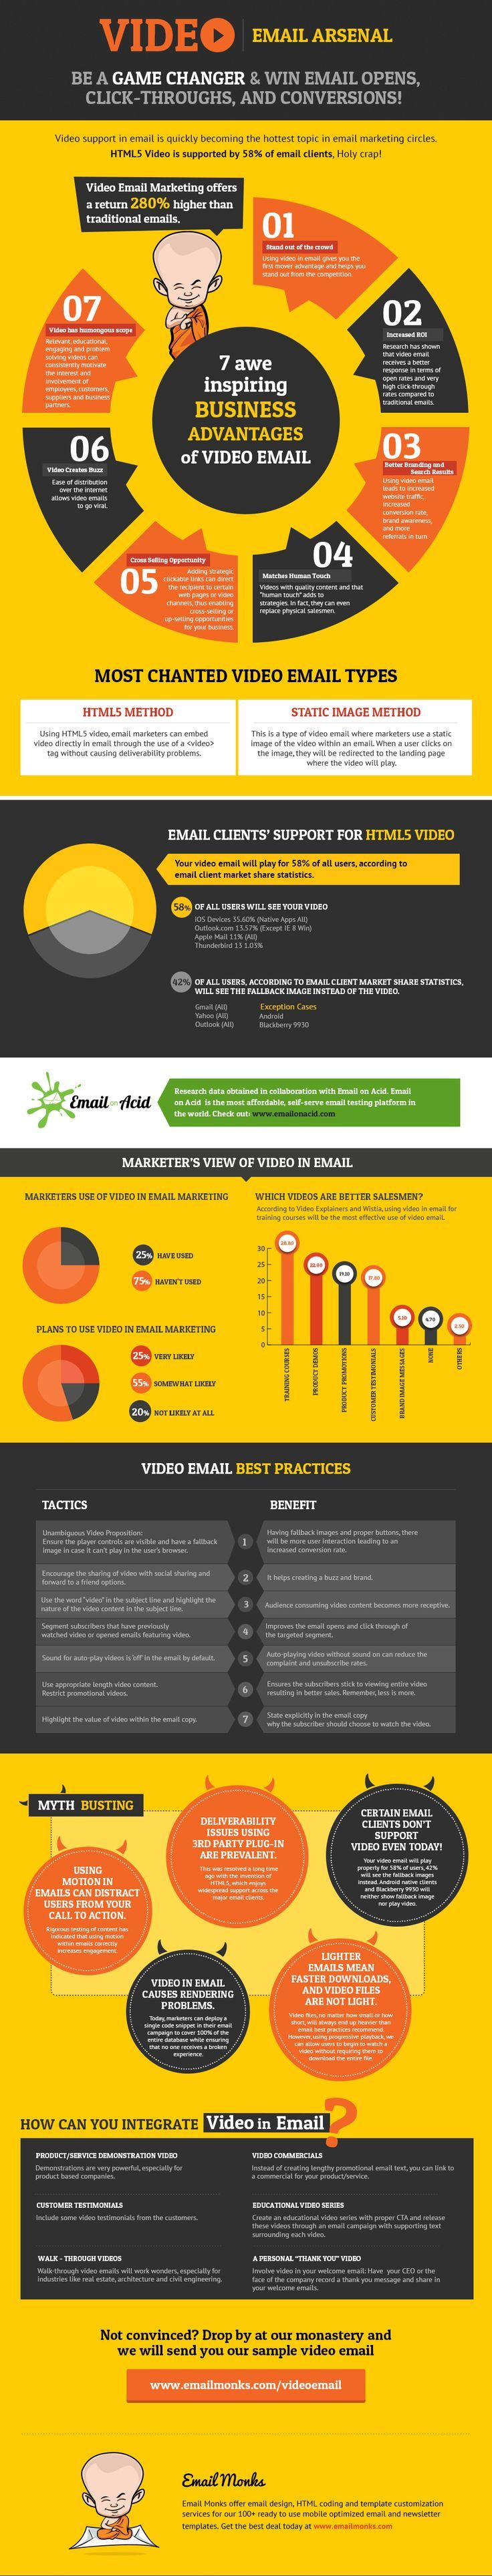 2014 Digital Marketing  -- Video in Email Here is What You Need to Know   http://socialmouths.com/blog/2014/07/08/video-in-email/ #emailmarketing